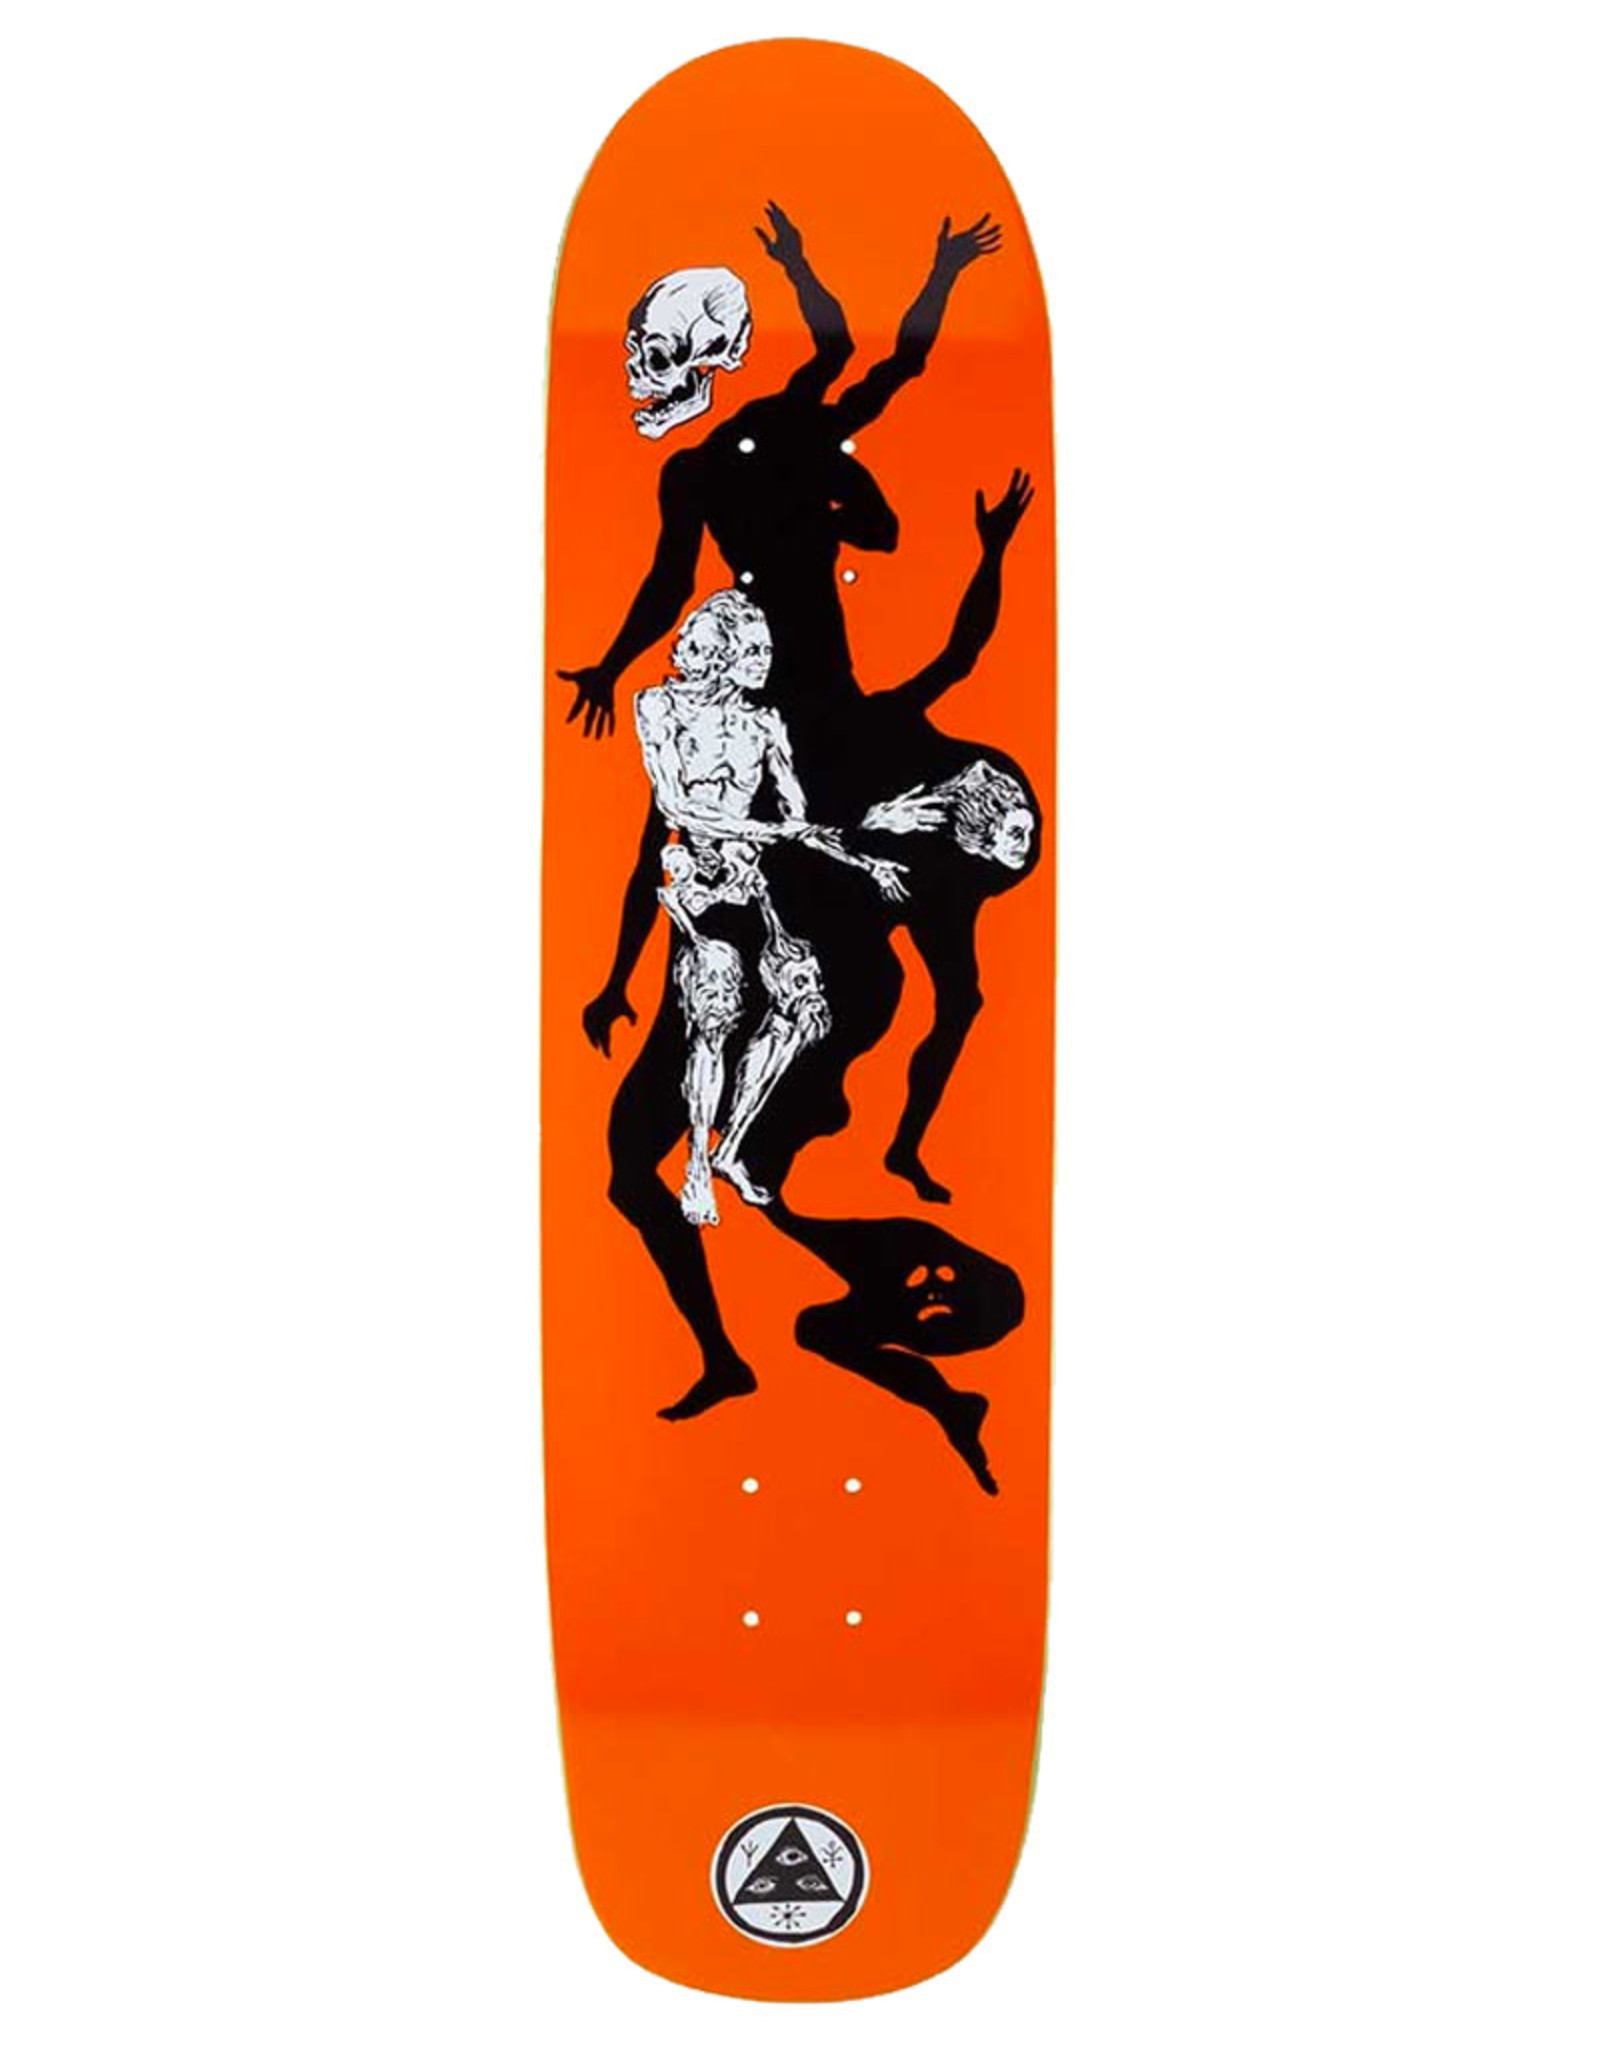 Welcome Welcome Deck Team The Magician On Son Of Planchette Orange (8.38)